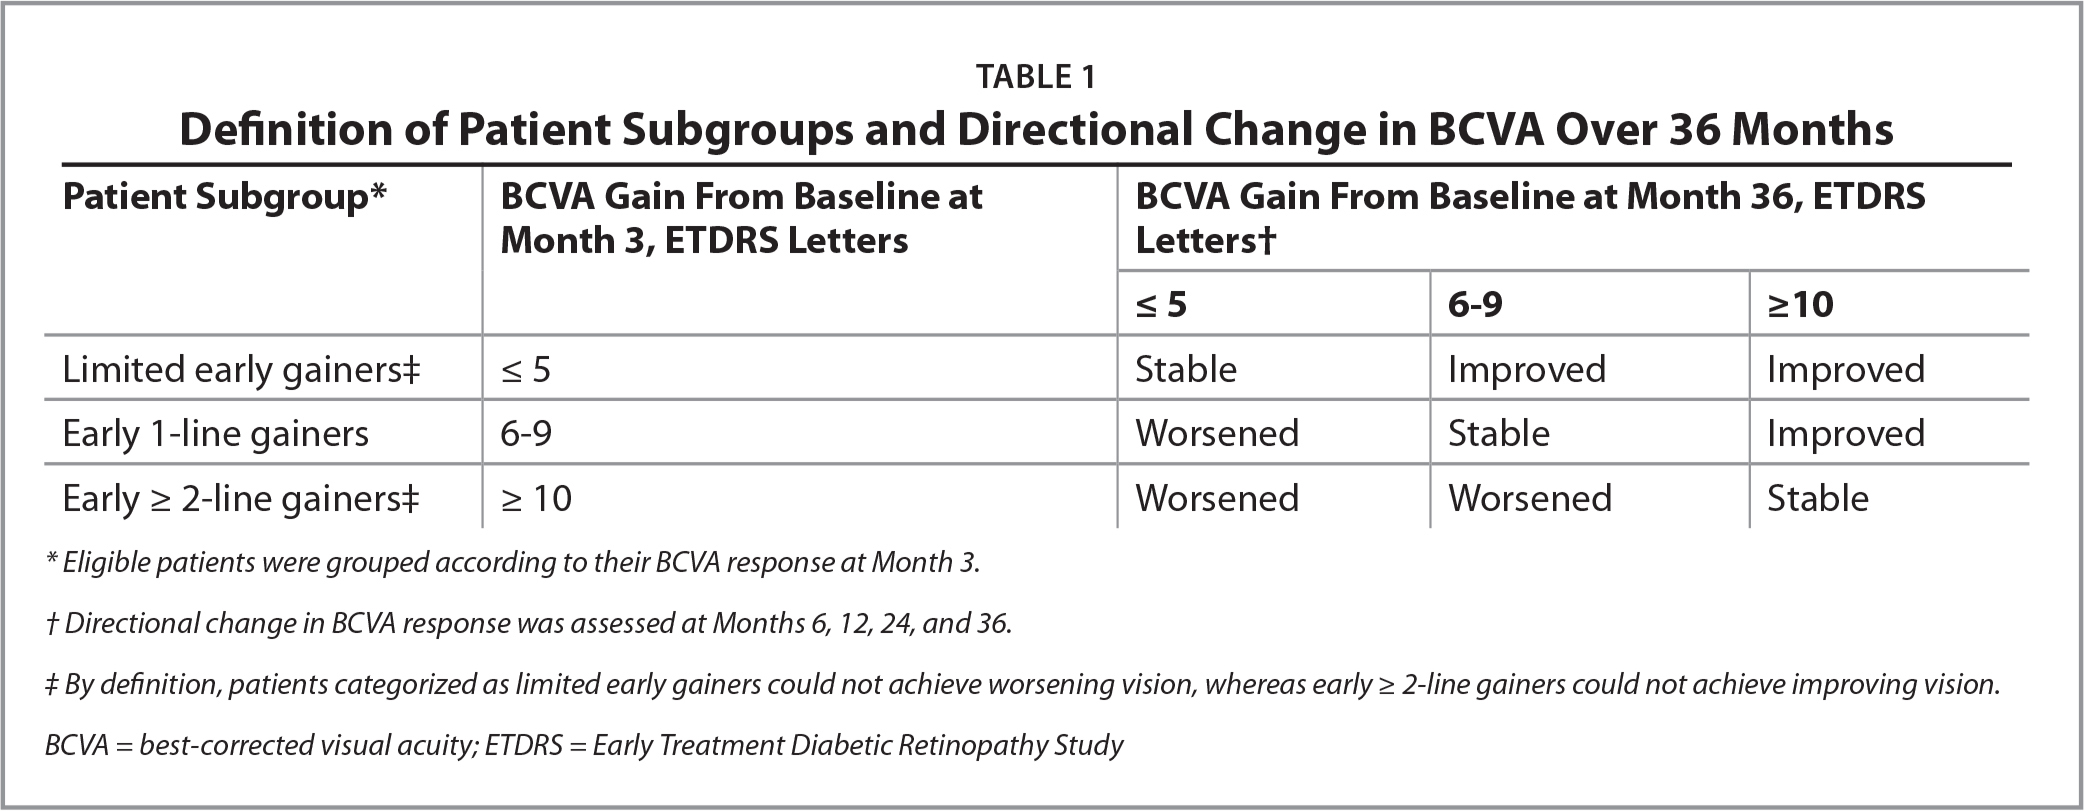 Definition of Patient Subgroups and Directional Change in BCVA Over 36 Months